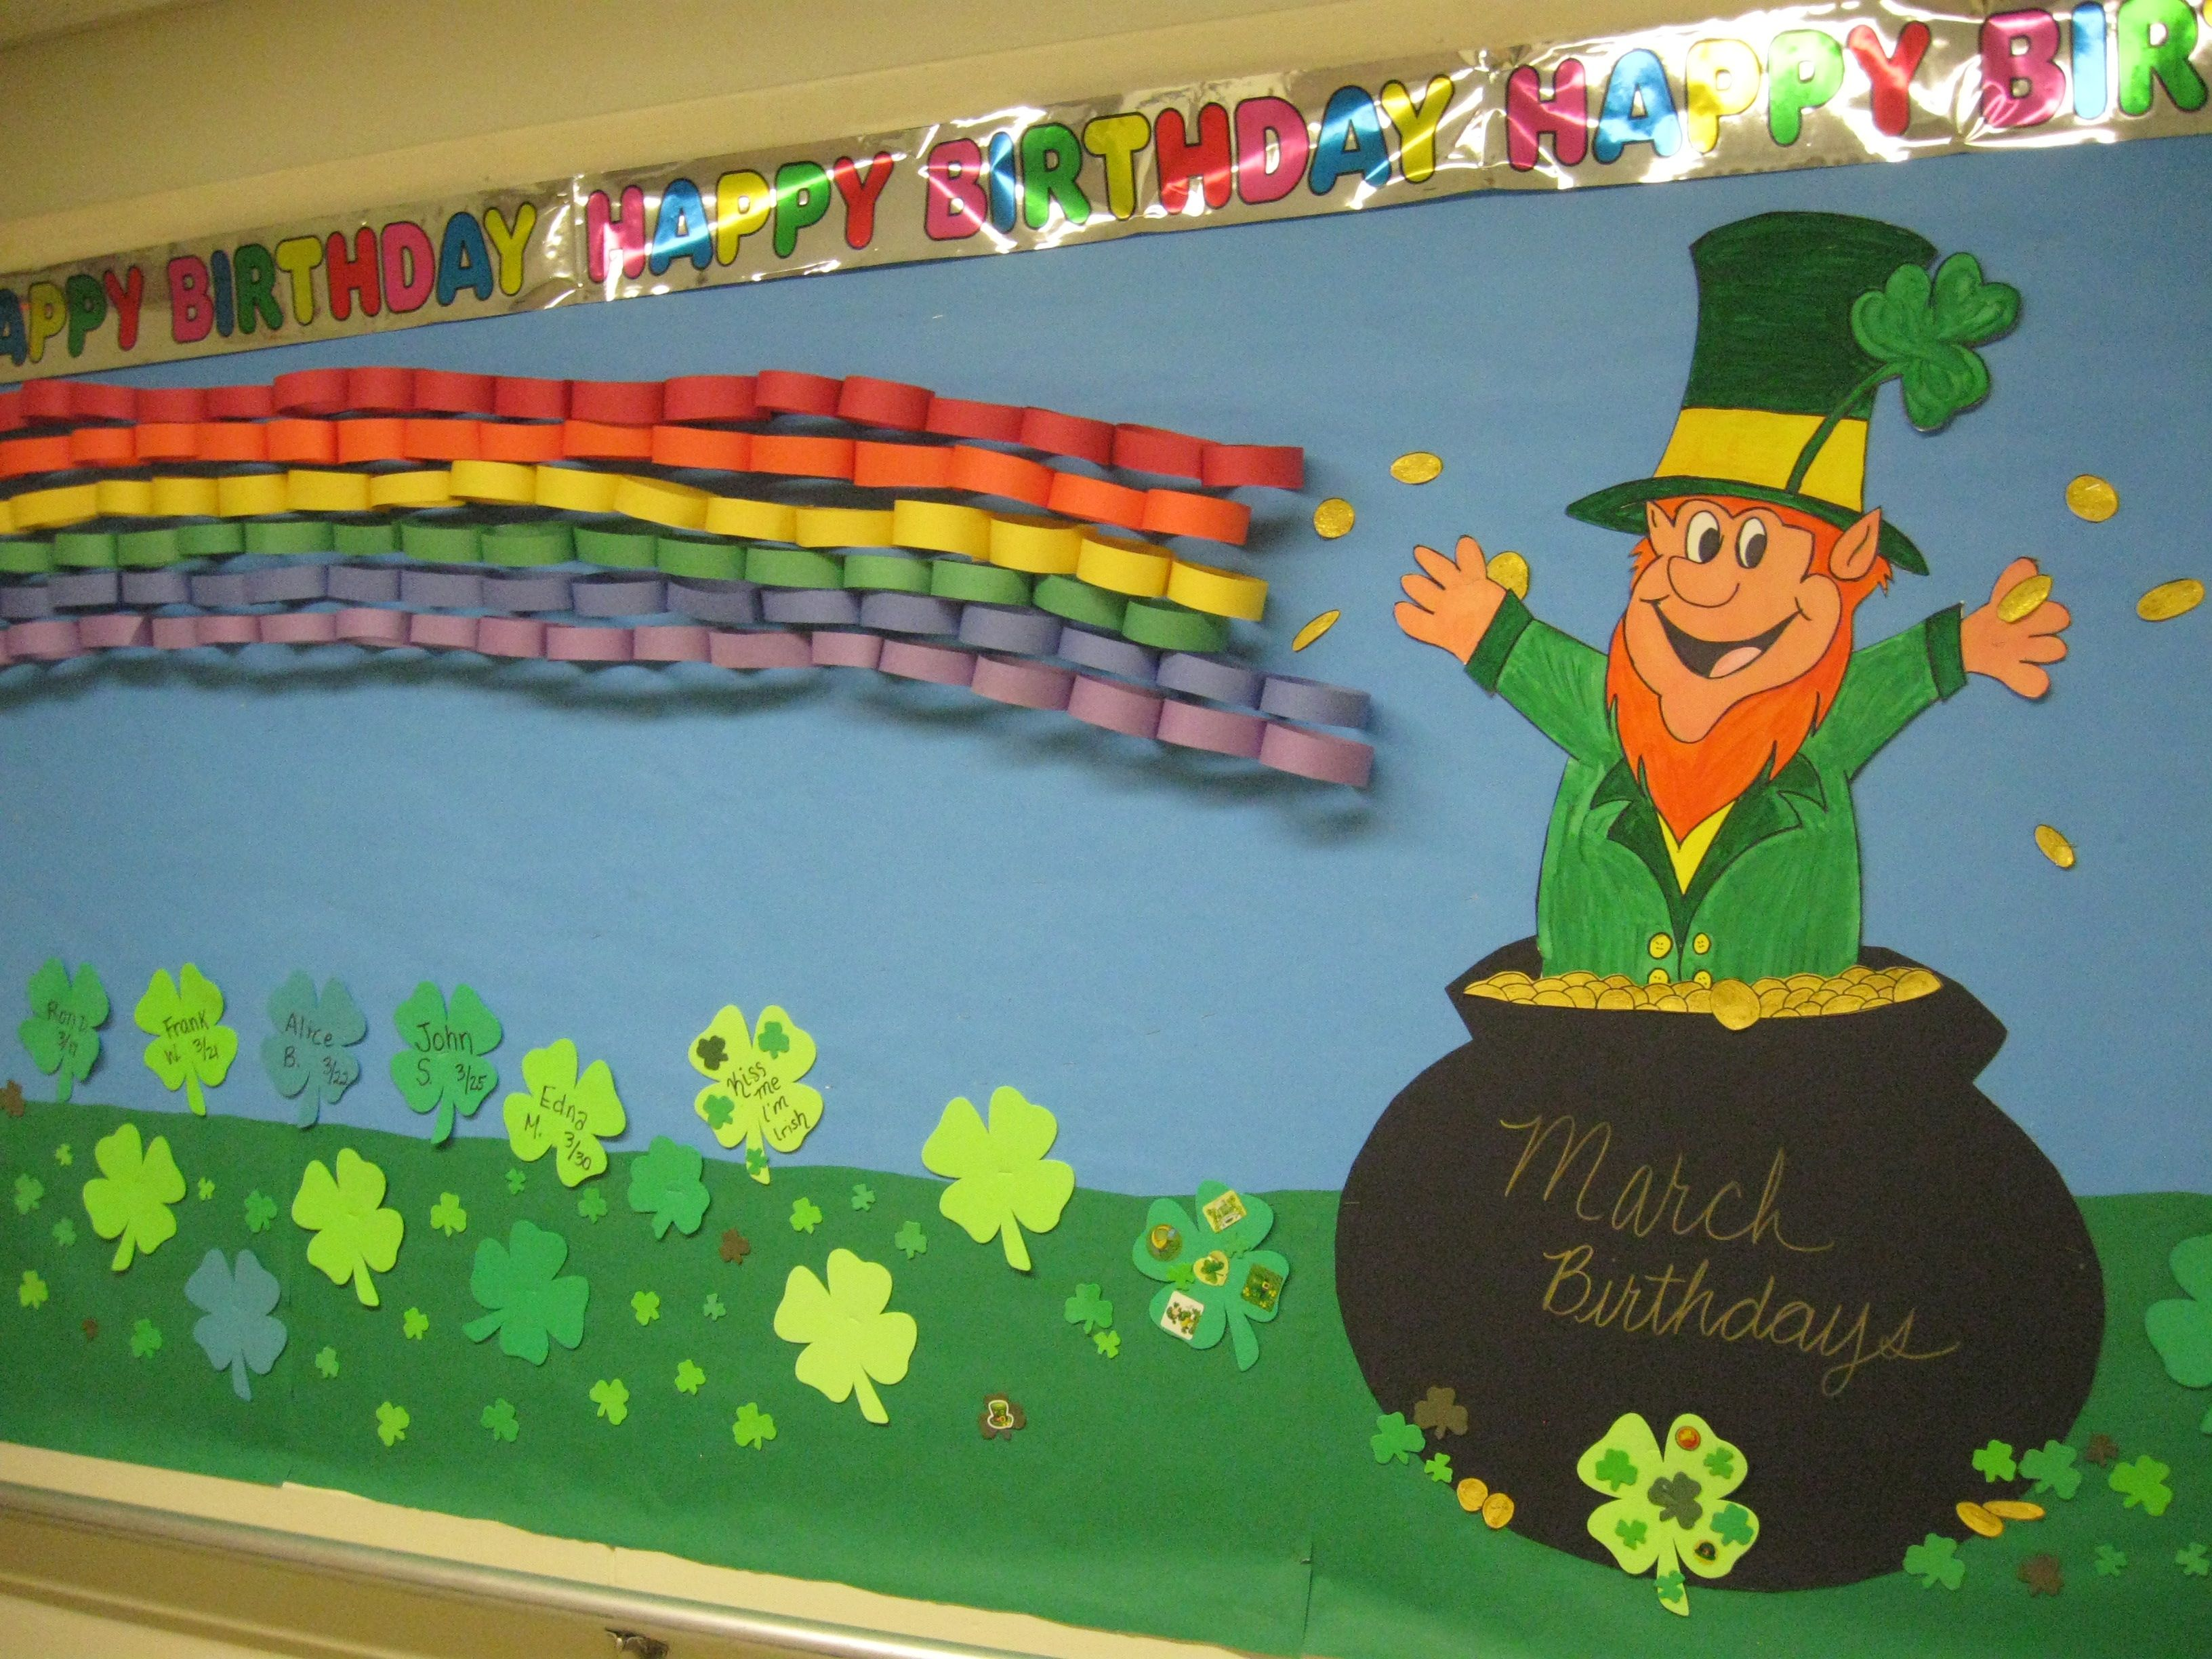 March Birthday Bulletin Board At The Nursing Home Boards Holiday